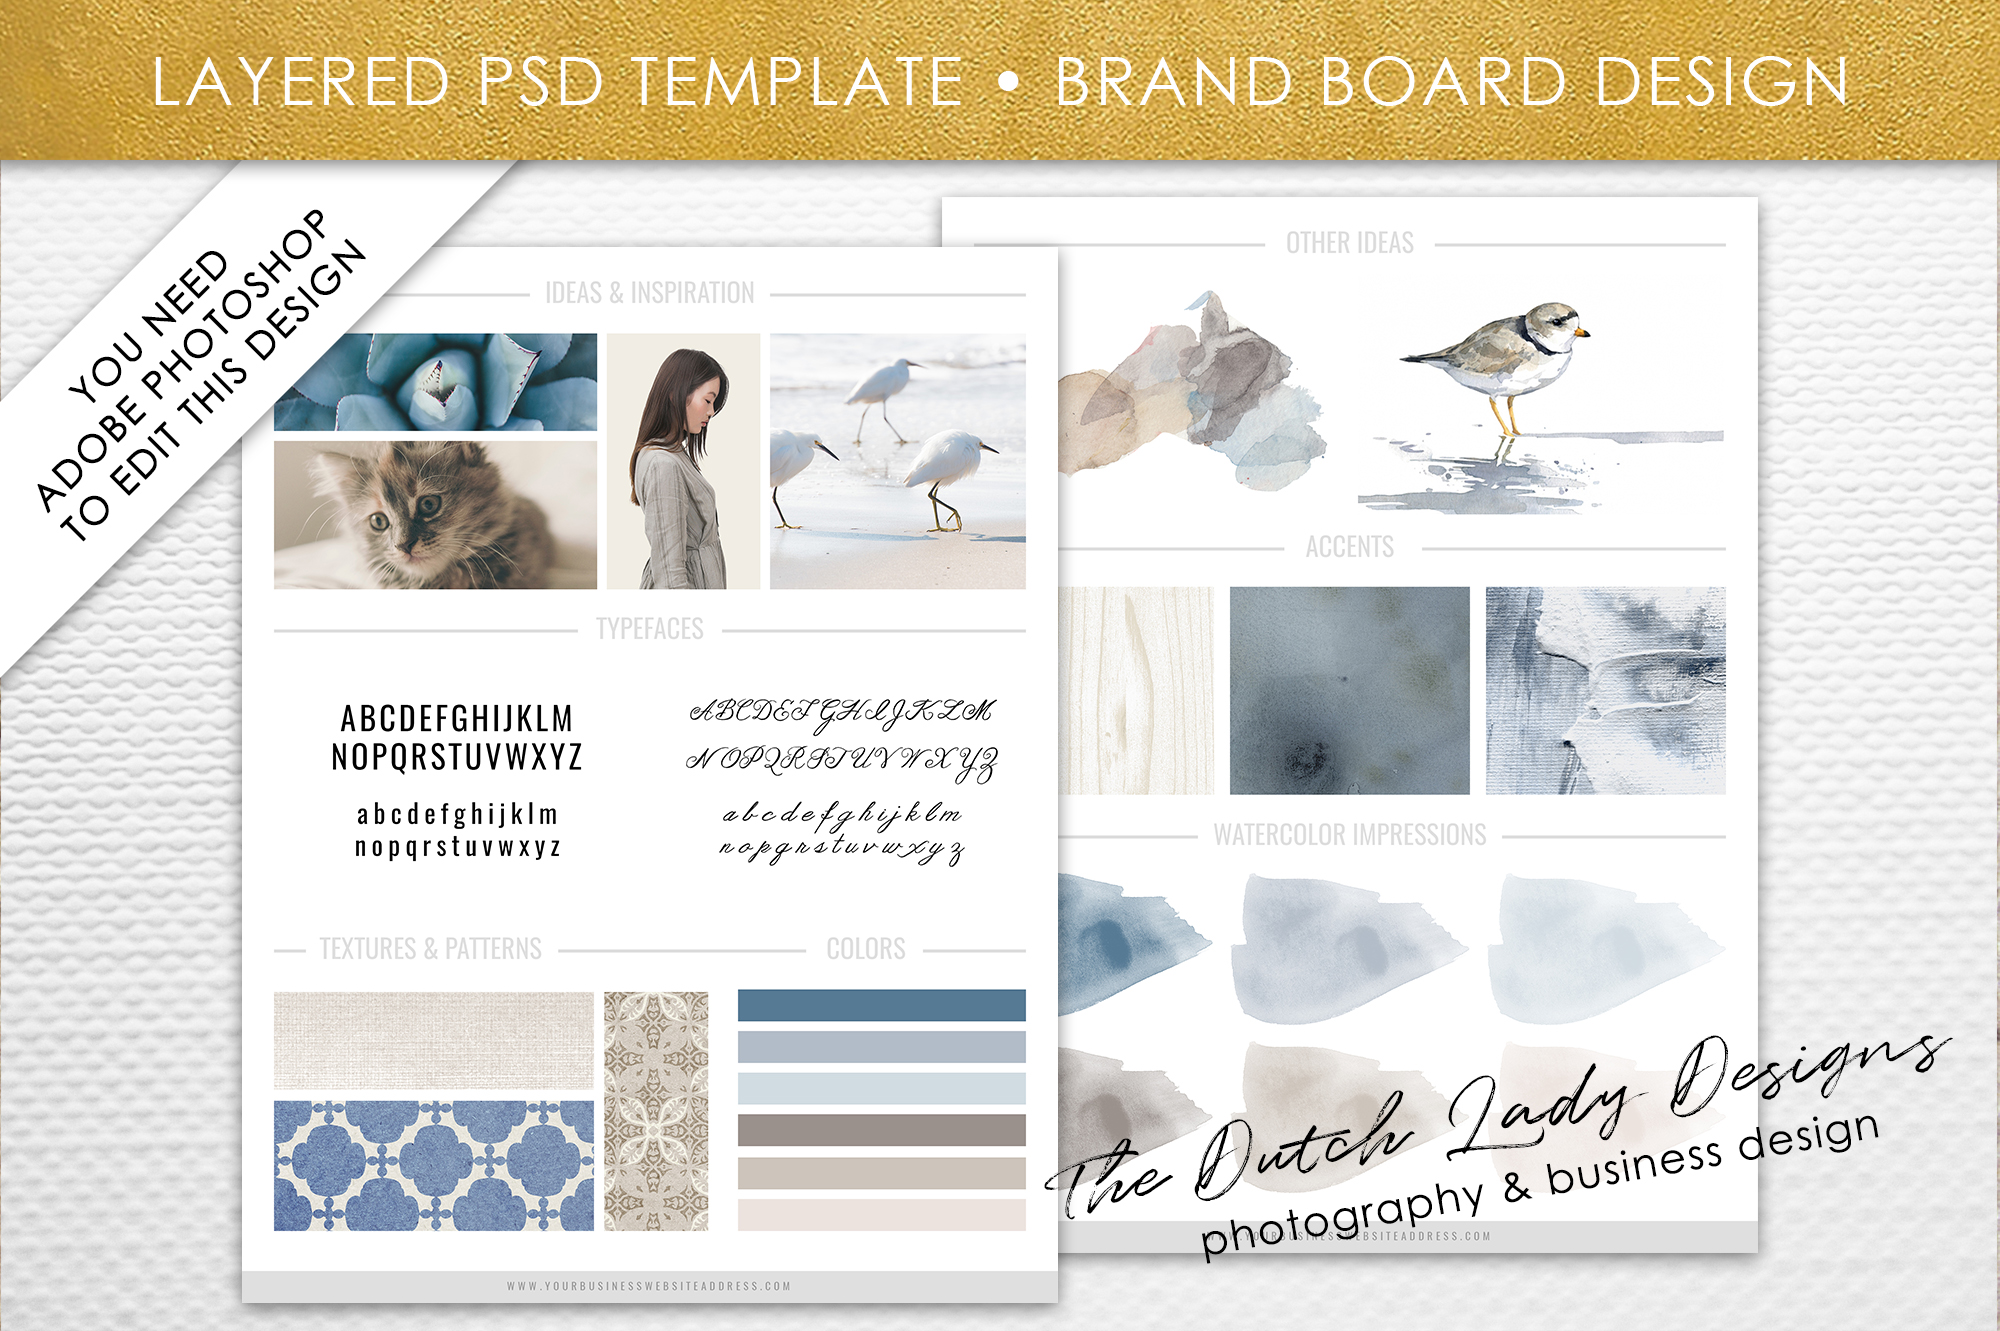 psd brand design board template design 4